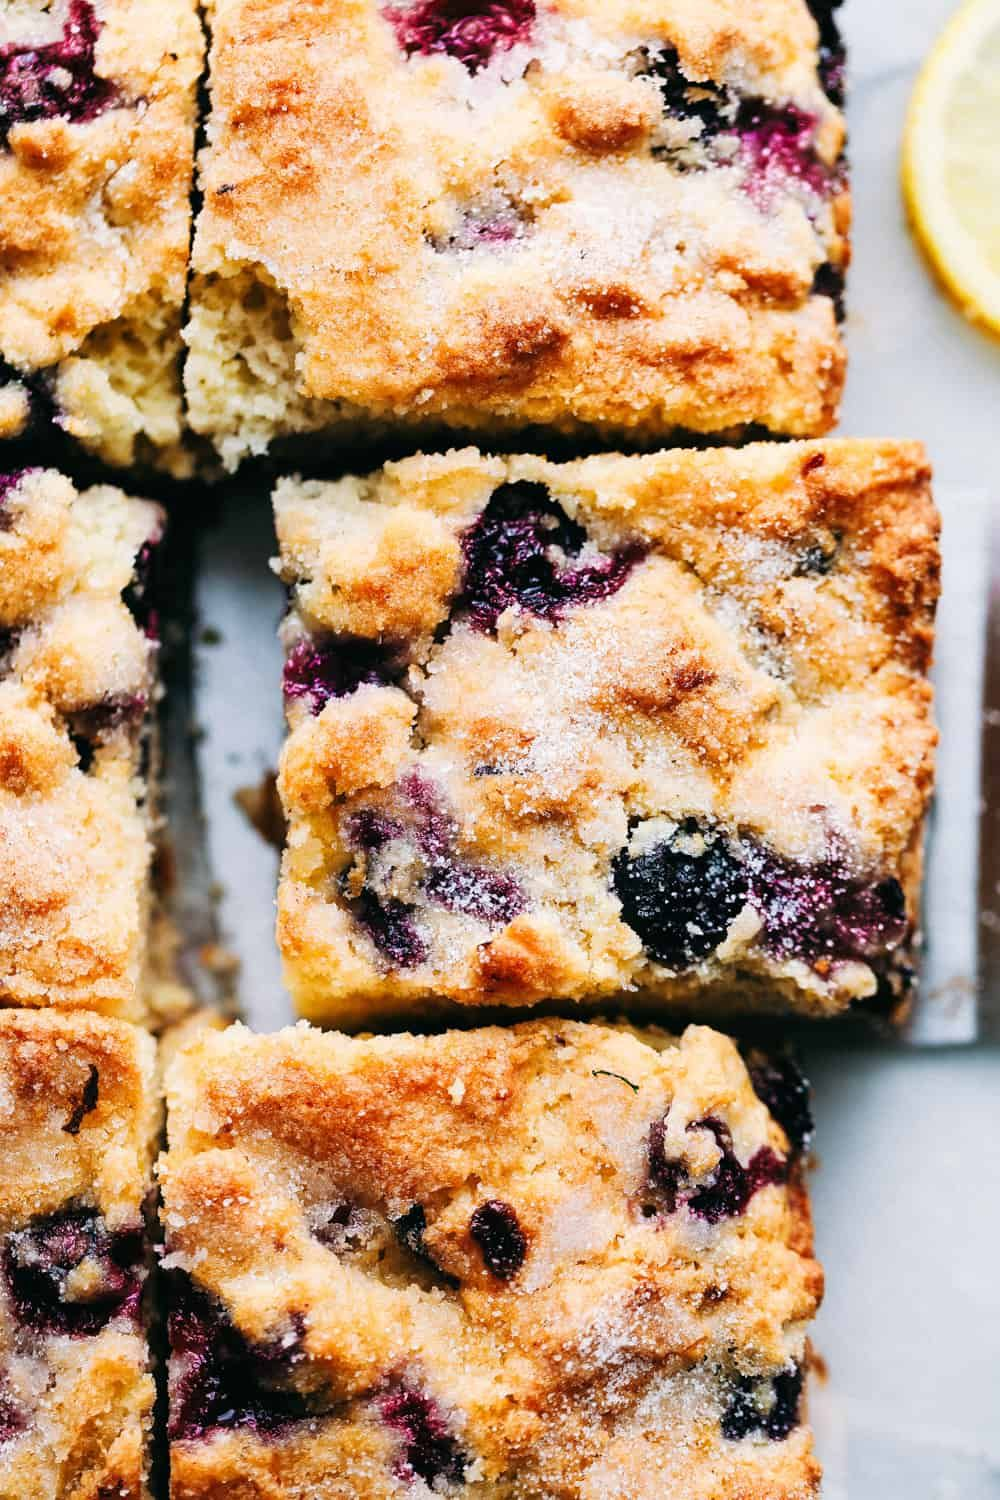 Incredible Blueberry Buttermilk Breakfast Cake | The Recipe Critic